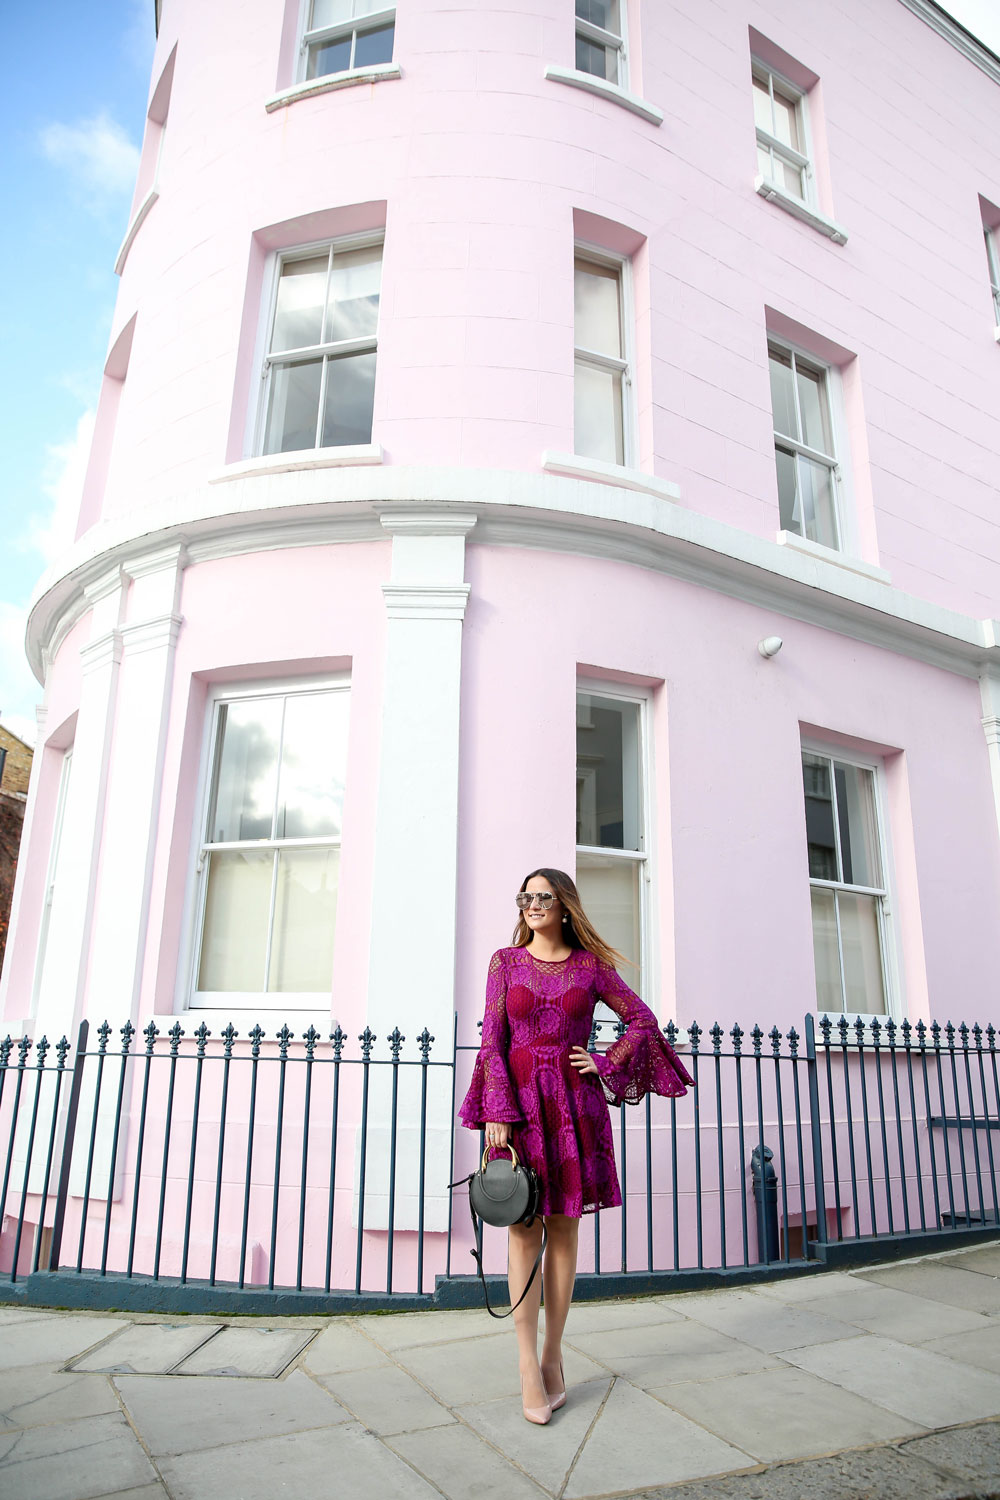 London Notting Hill Pink Curved Building